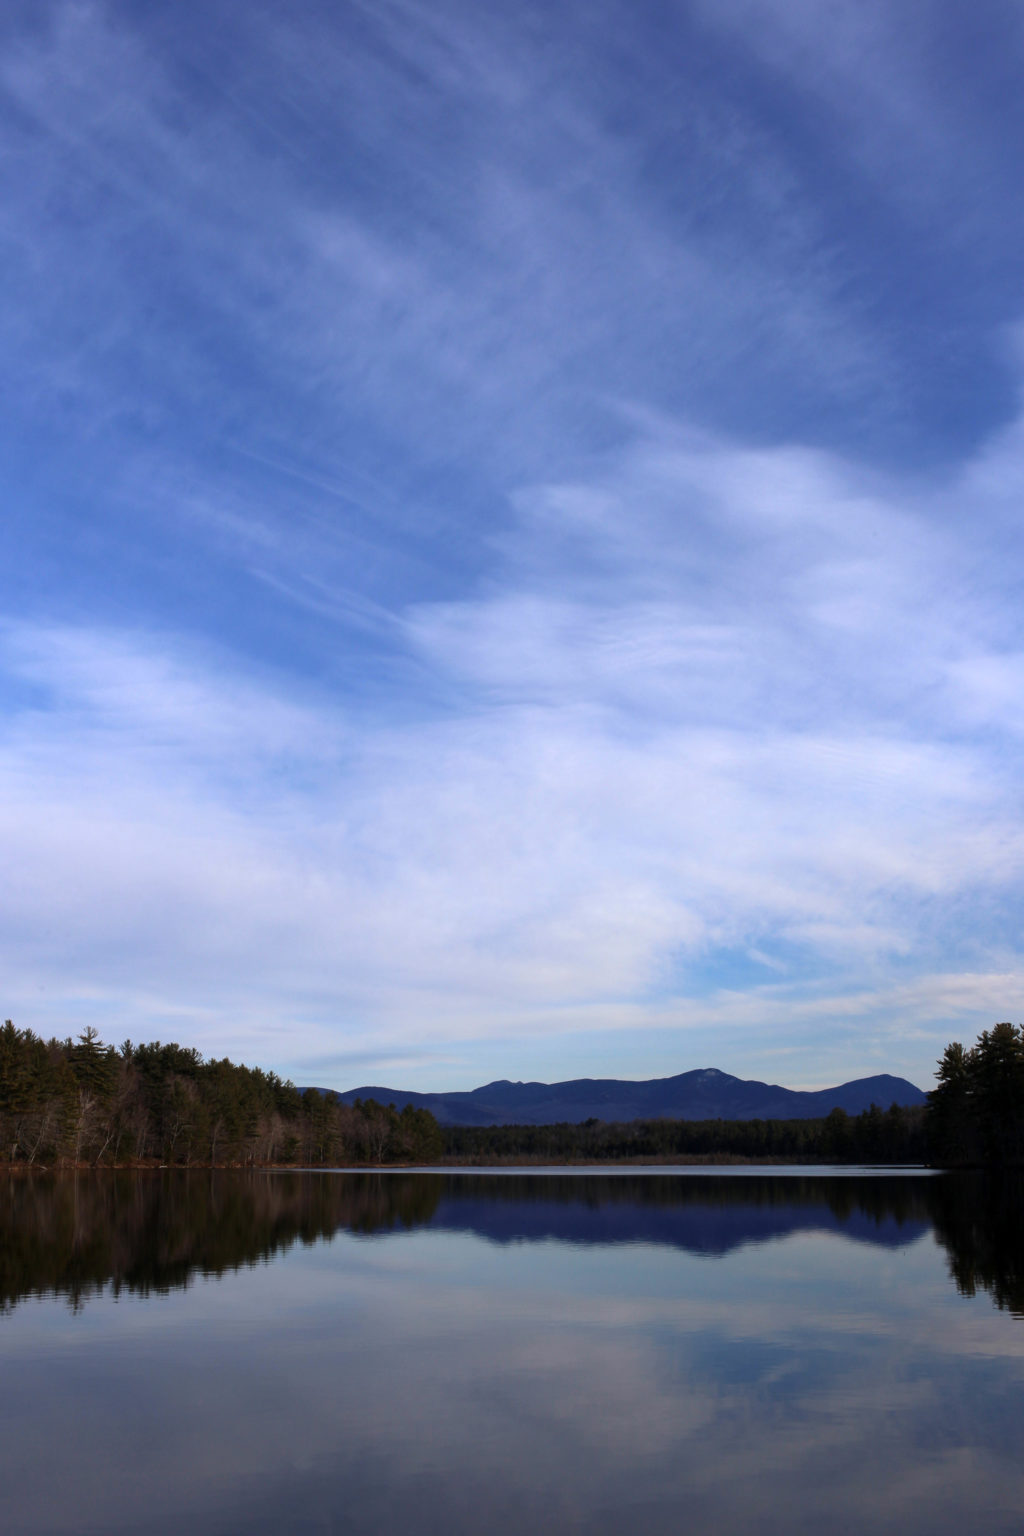 Wispy Clouds Reflected in Still Pond